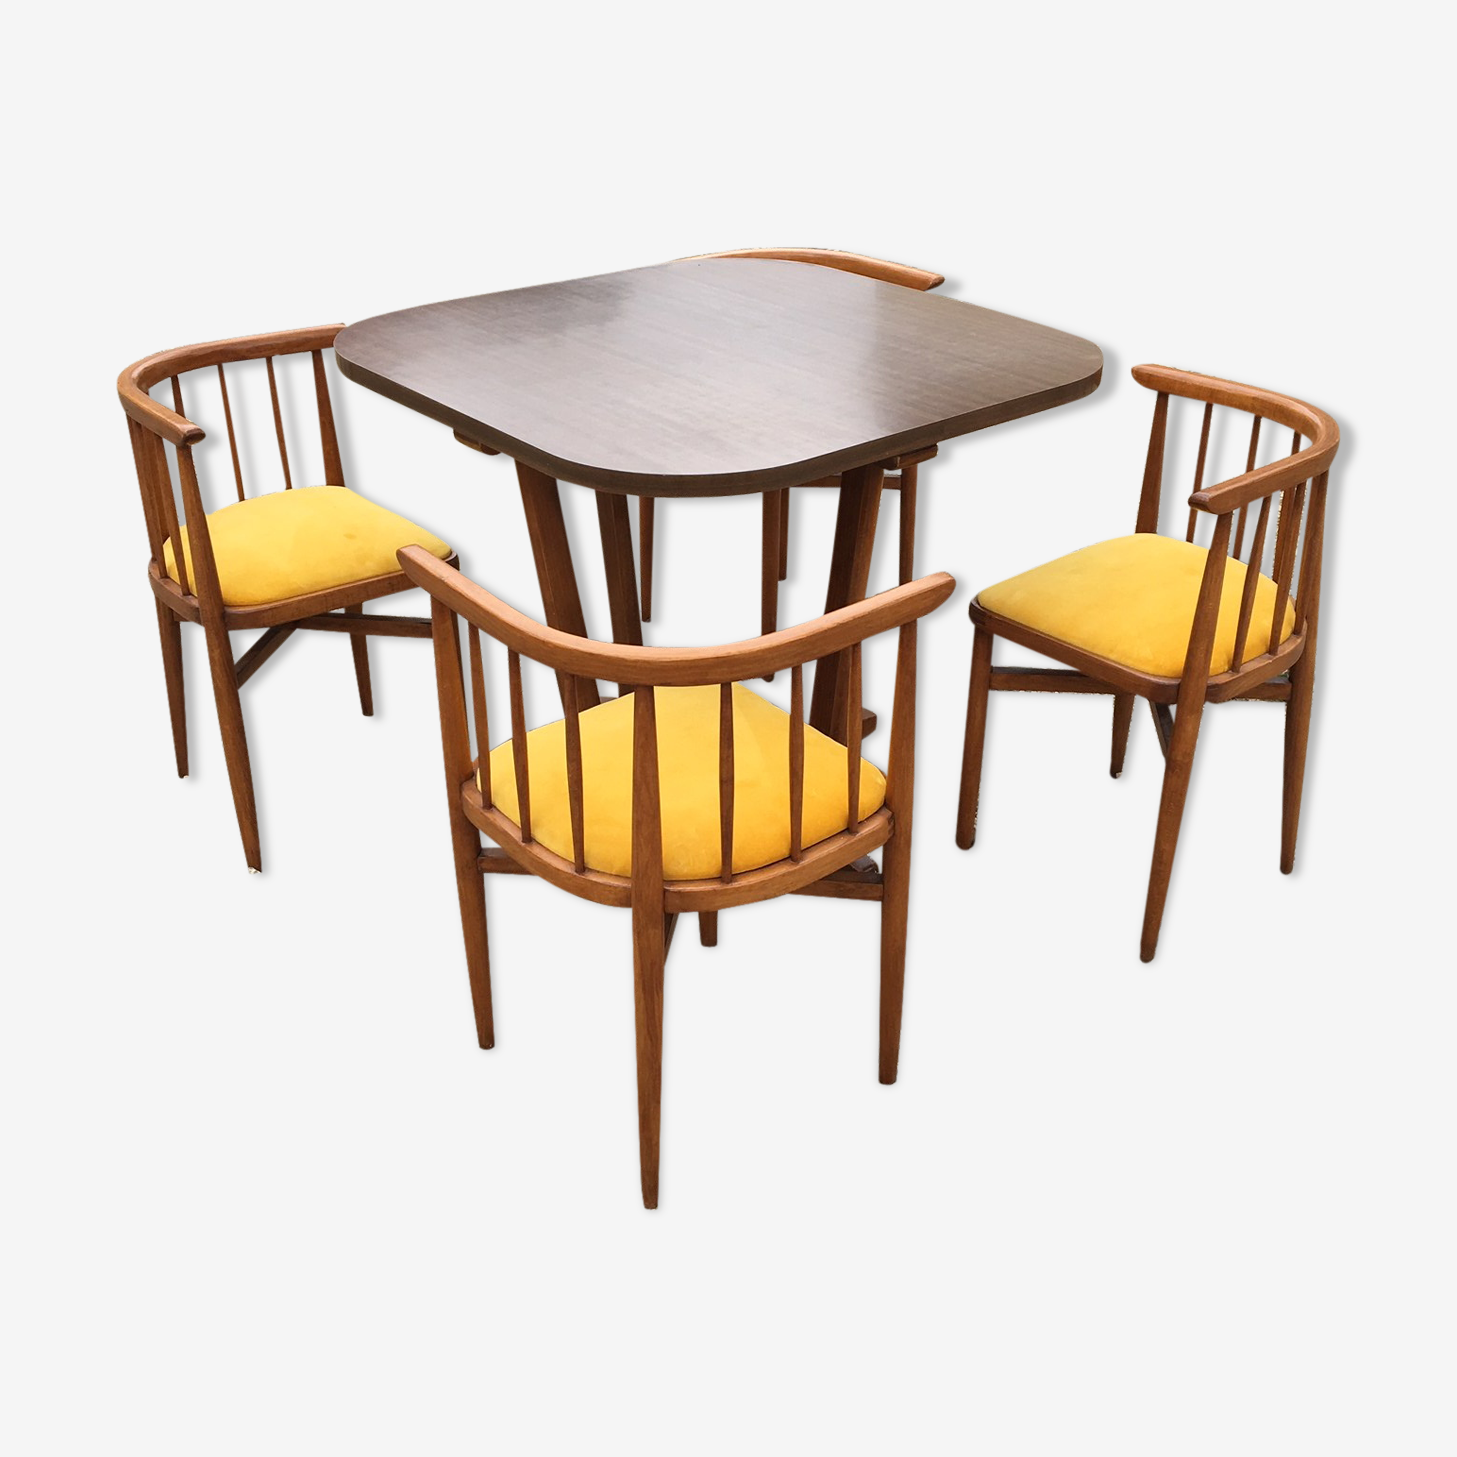 Ensemble table et chaises Thonet